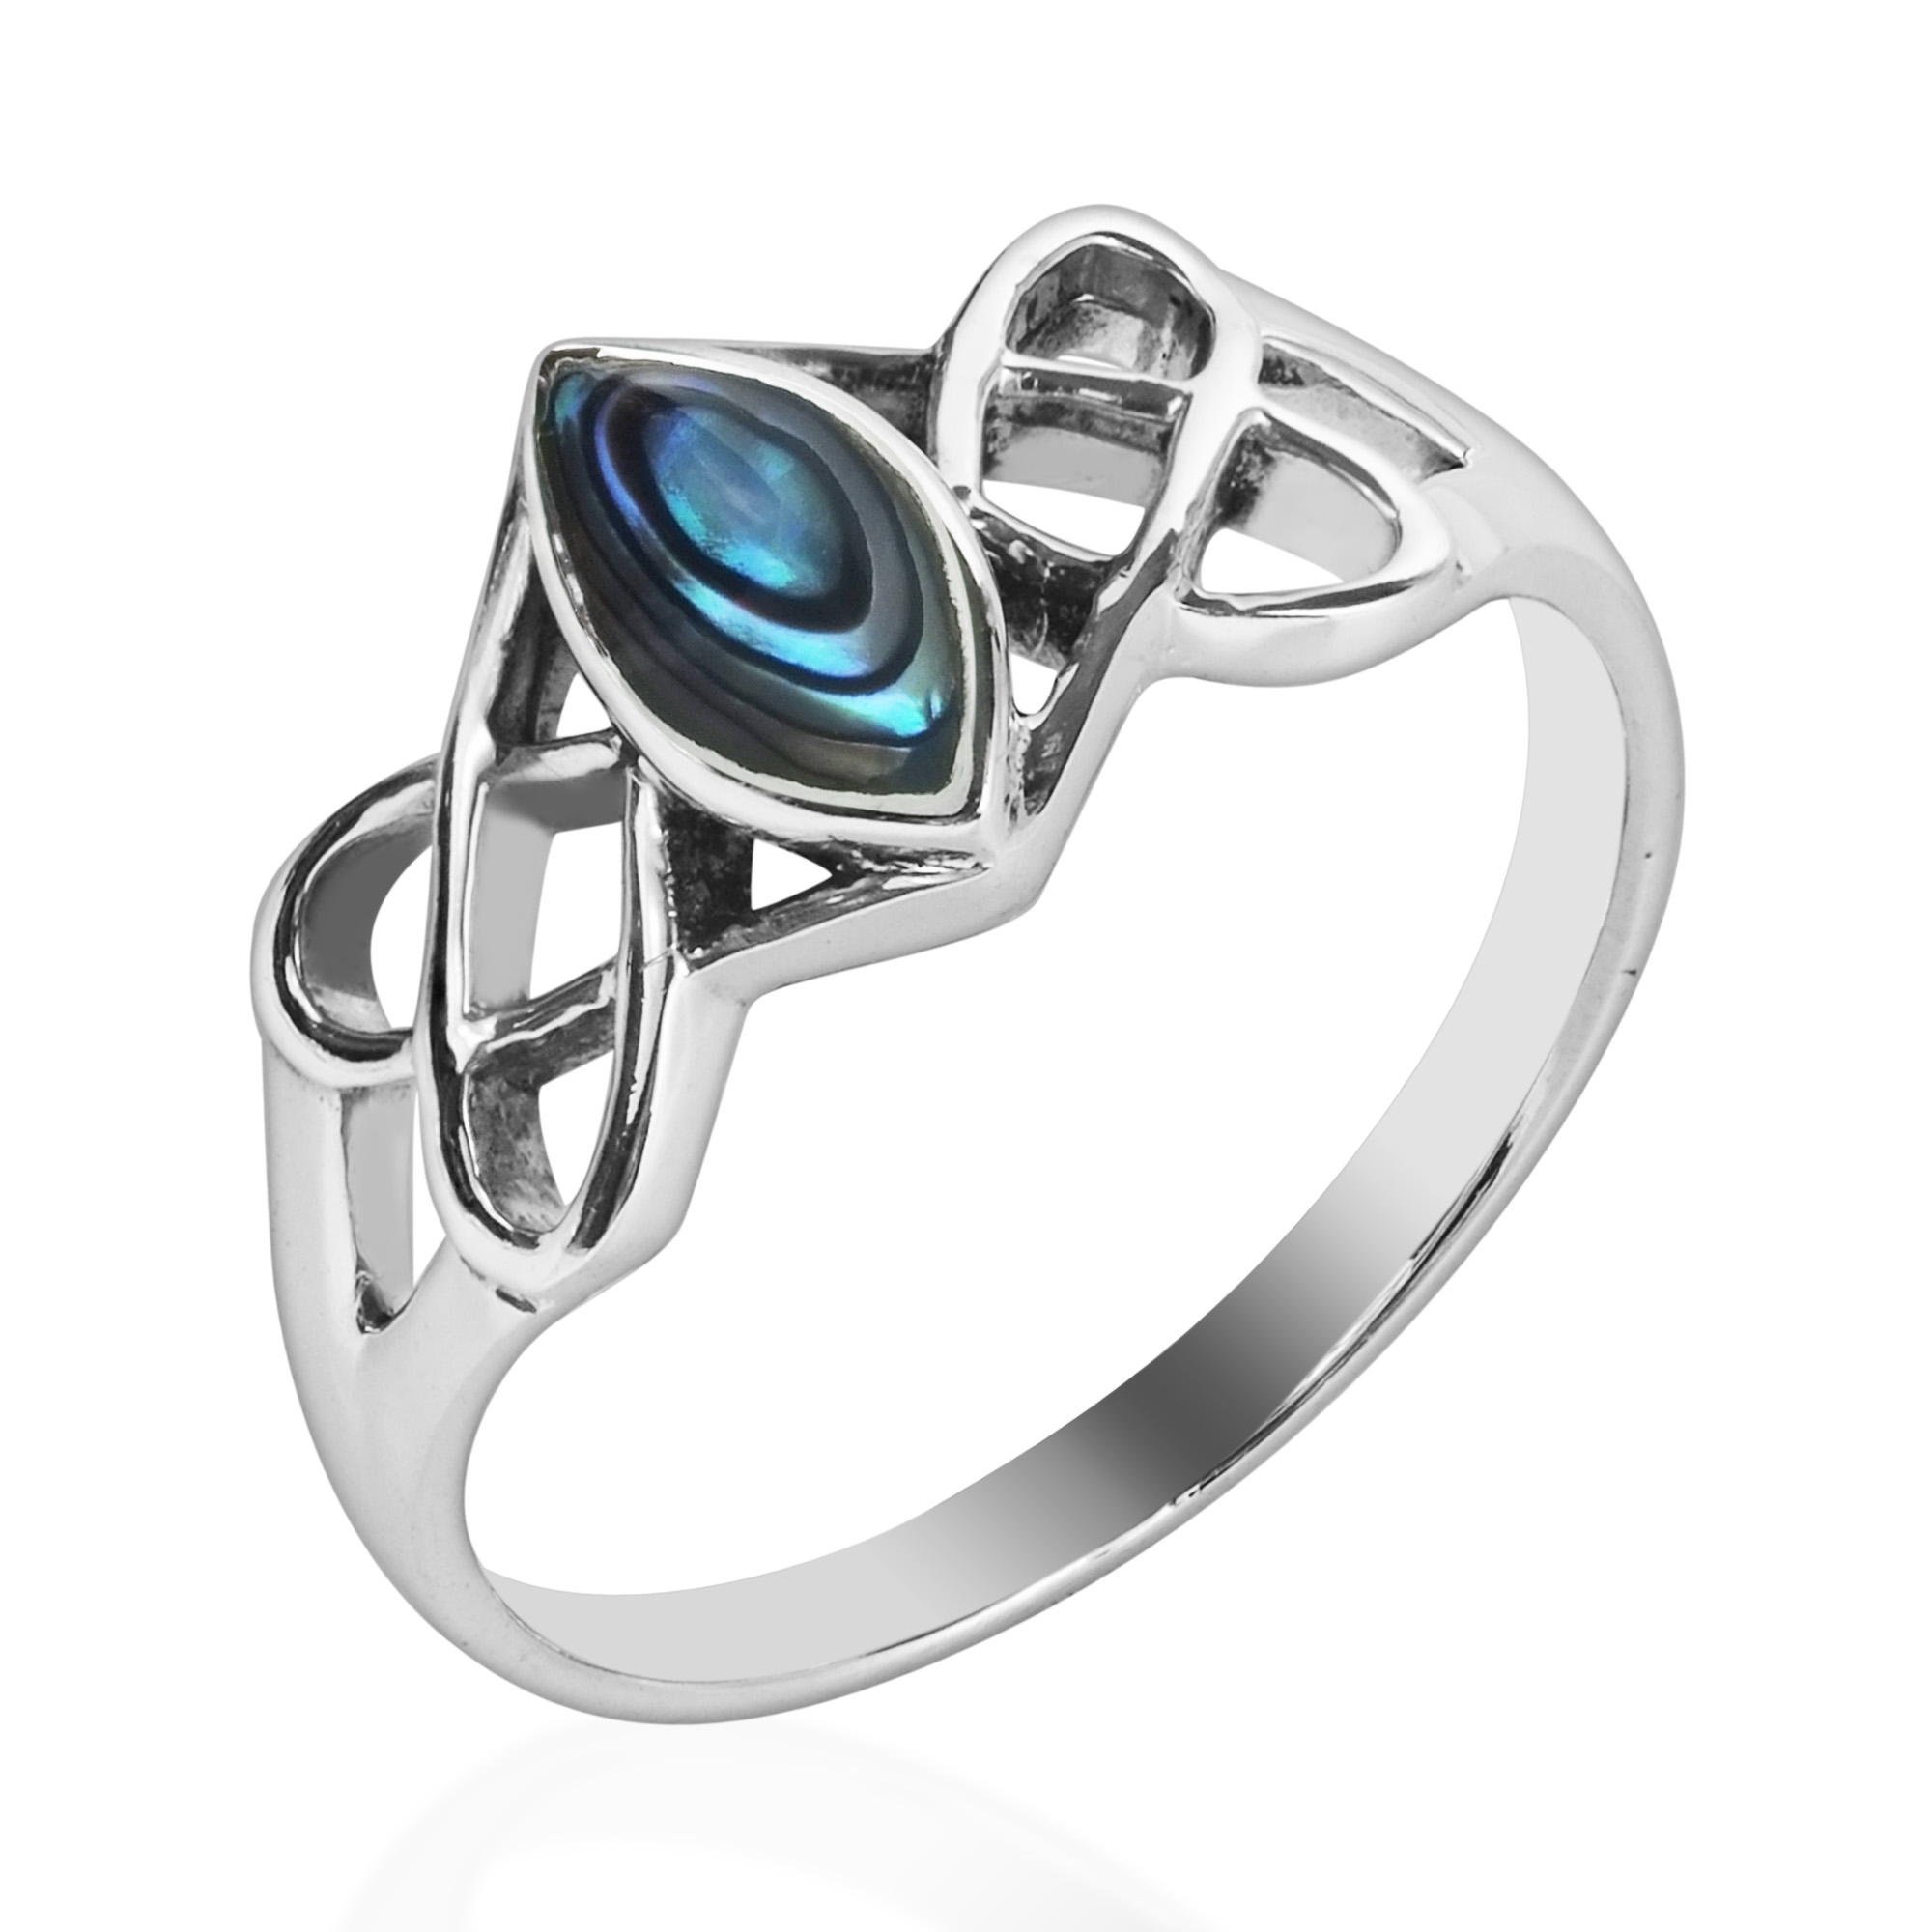 stone turquoise this features aba vintage silver devotion true thailand endearing sterling style abalone details ring sr from a aeravida the products or artisan shell shaped handcrafted kung rings heart engagement